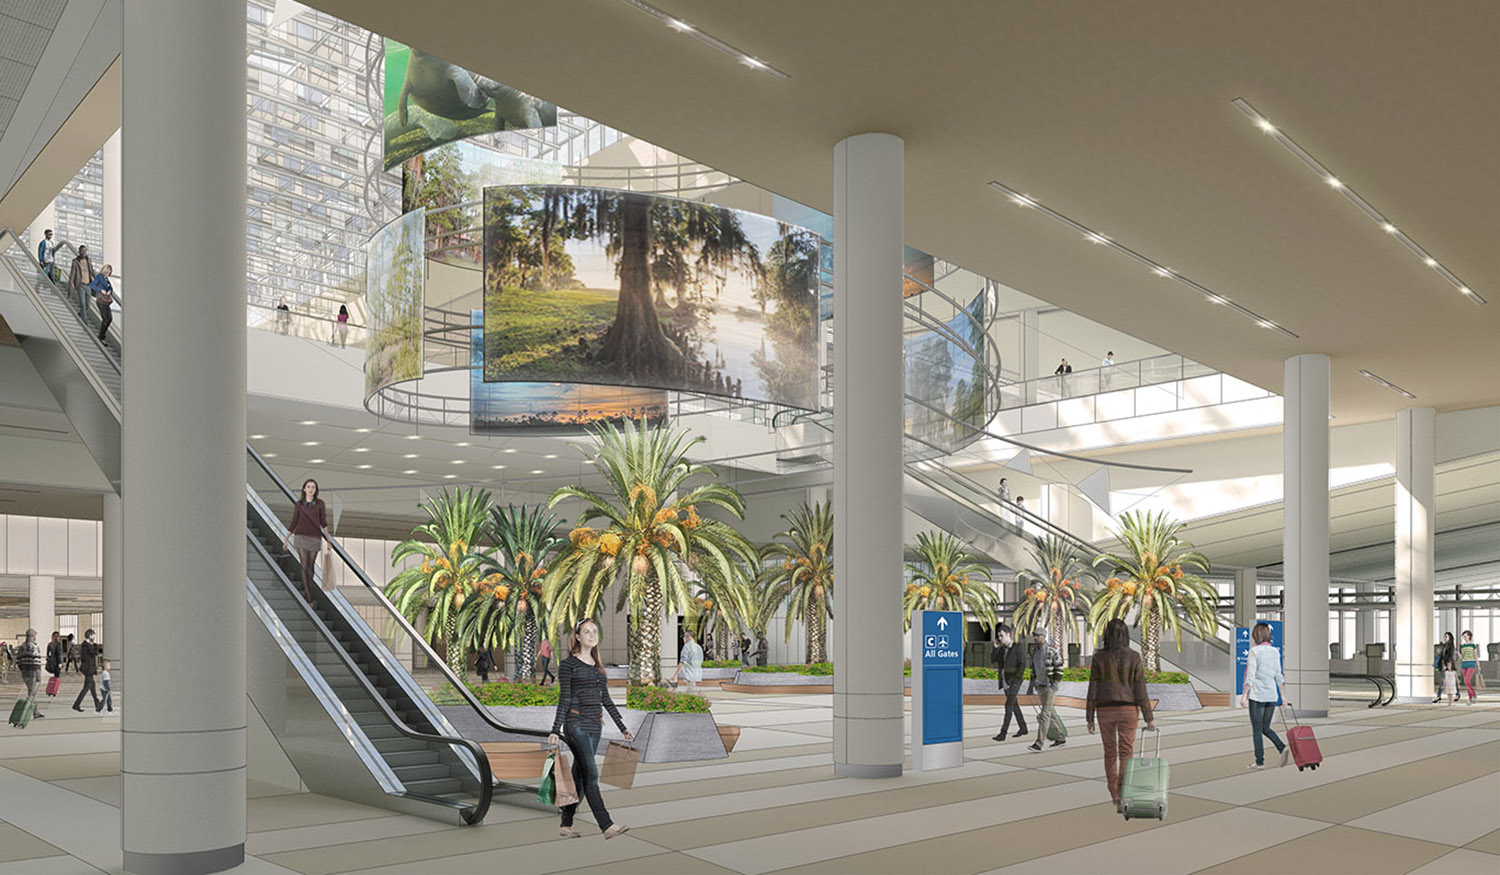 Media screens in the Town Square display images of Central Florida, creating a unique sense of place. Fentress Architects